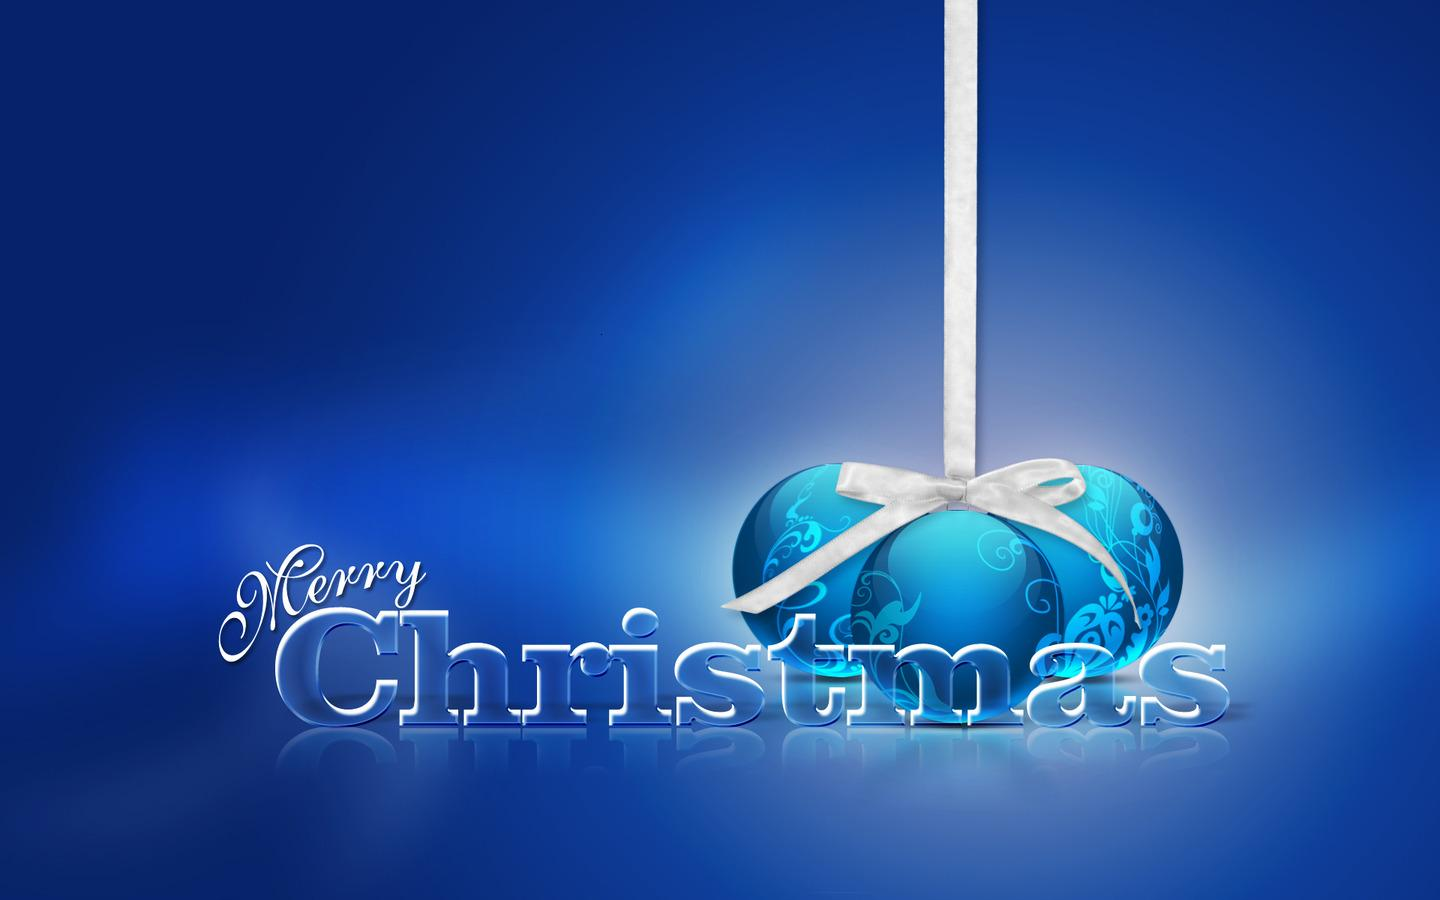 Beautiful Desktop Wallpapers 3d Christmas - ImgHD : Browse and ...